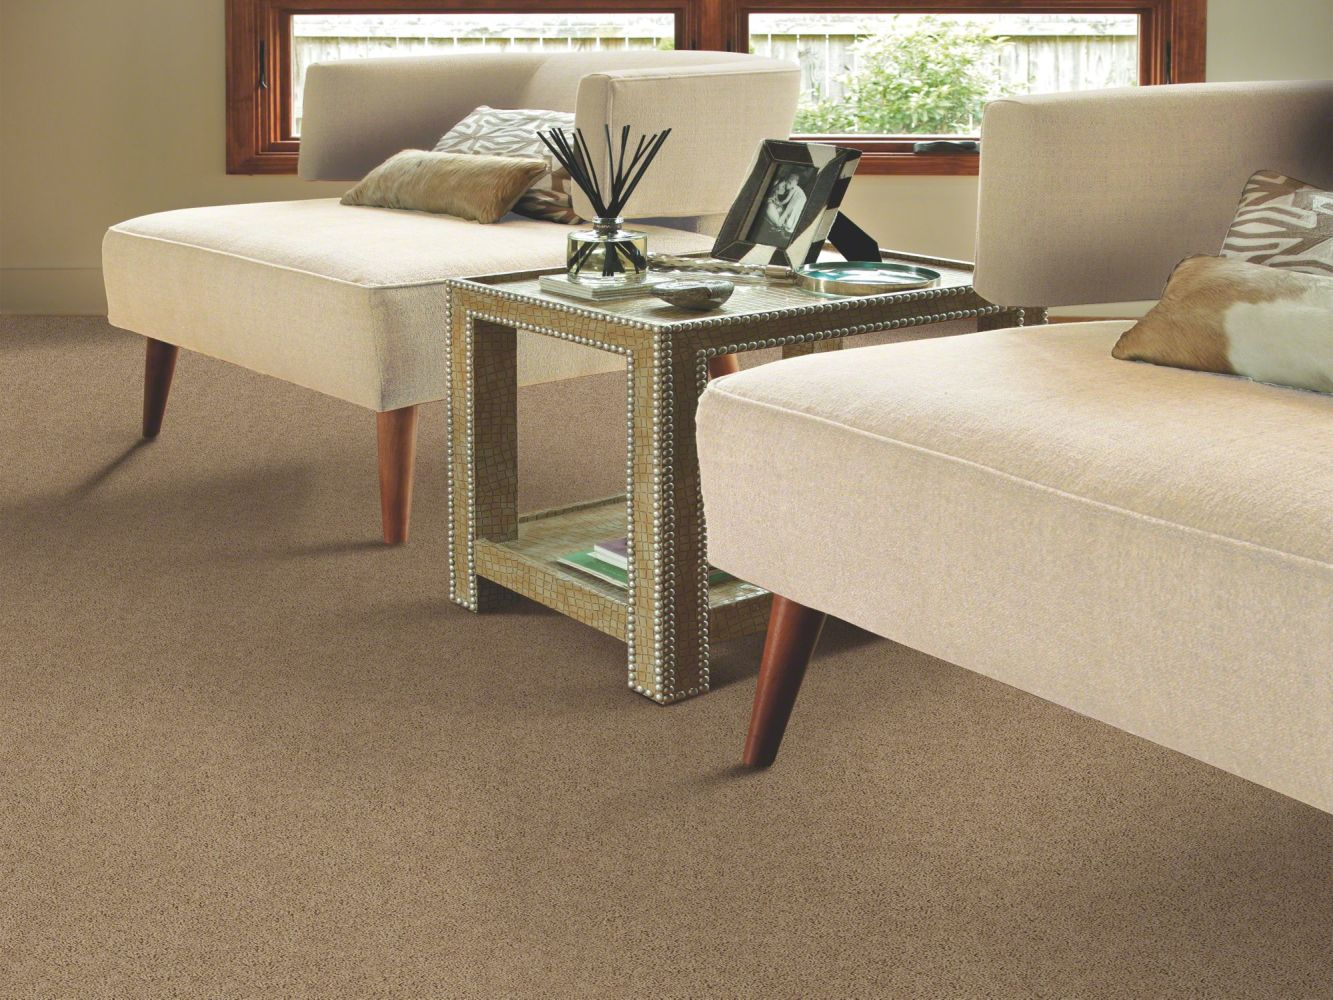 Shaw Floors Roll Special Xv442 Meadowlark 00701_XV442